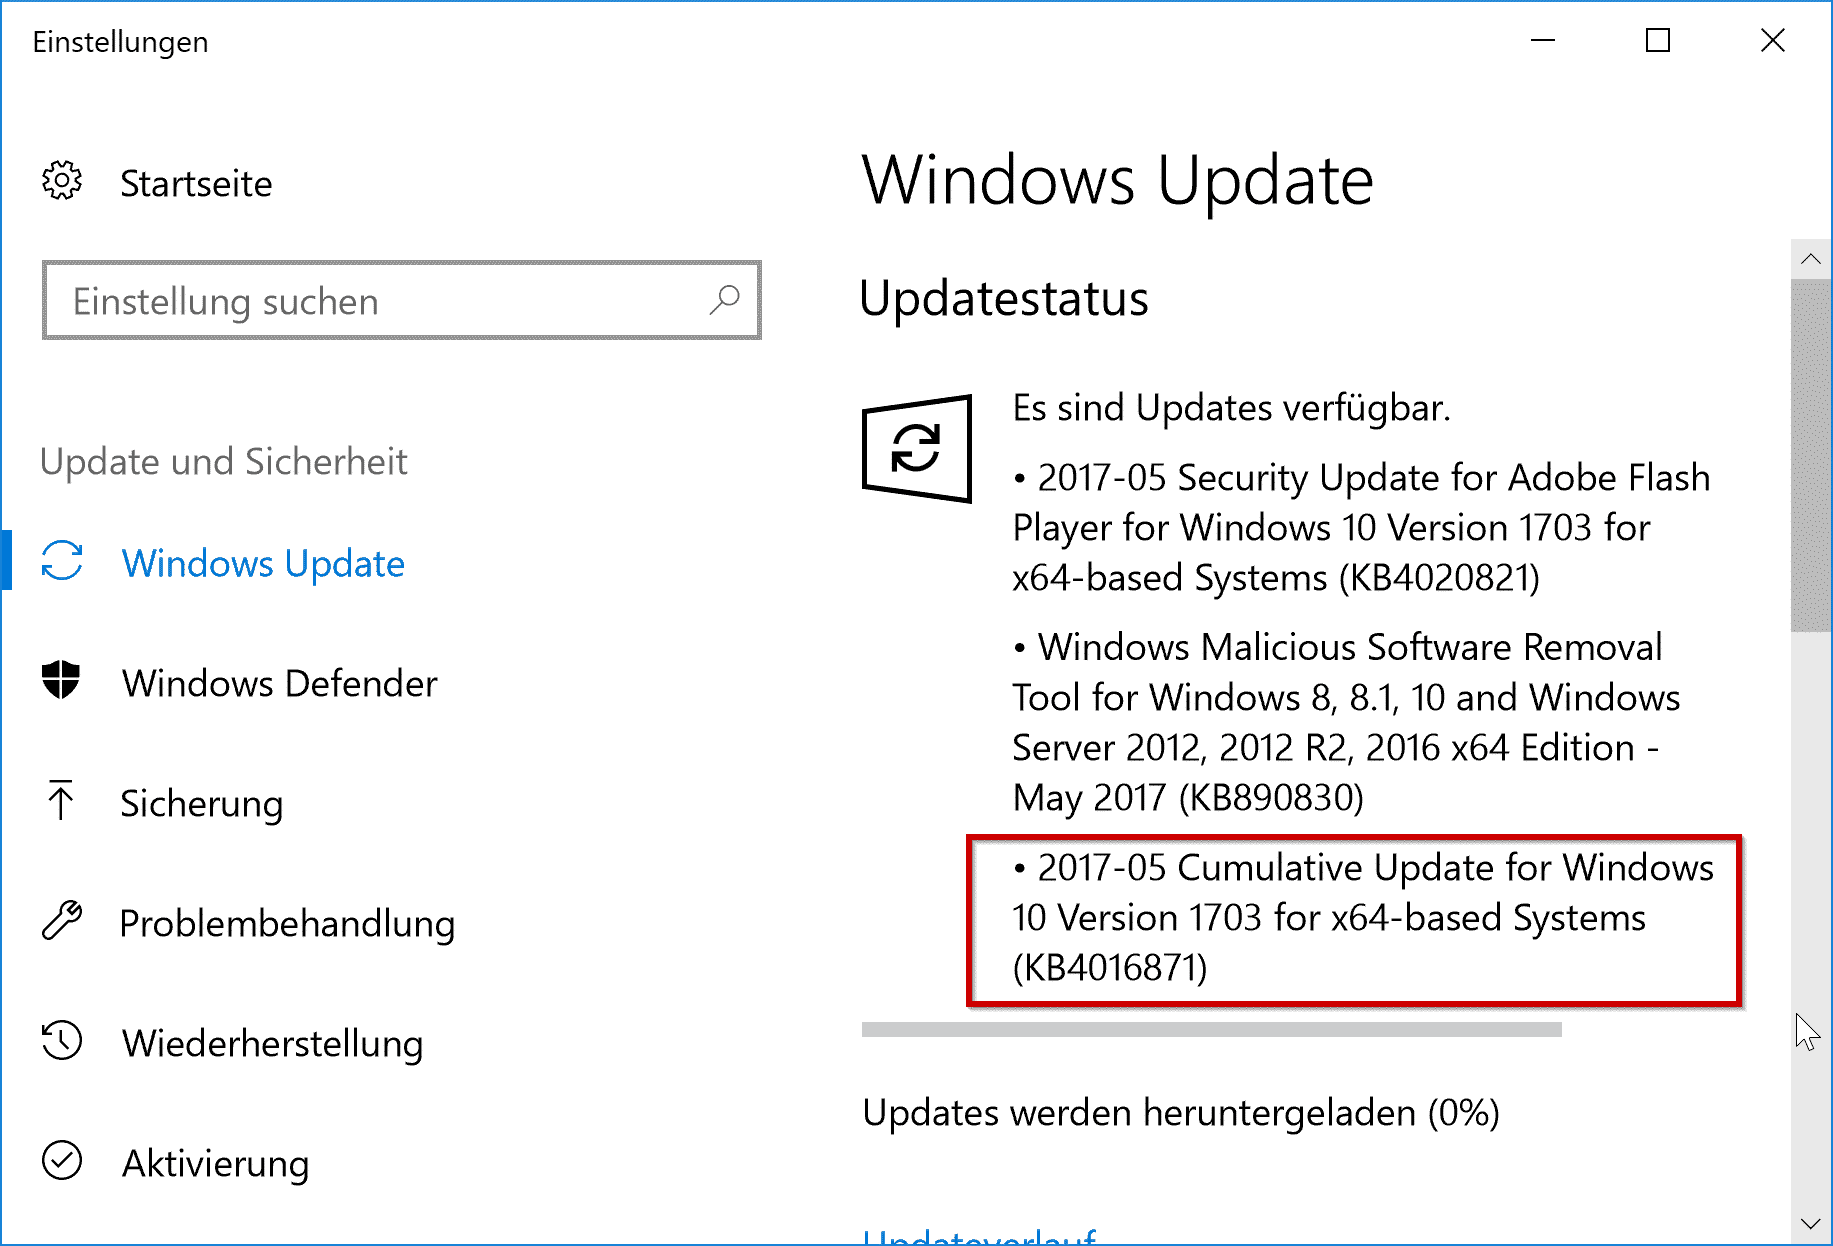 Kumulatives Updates für Windows 10 Version 1703 KB4016871